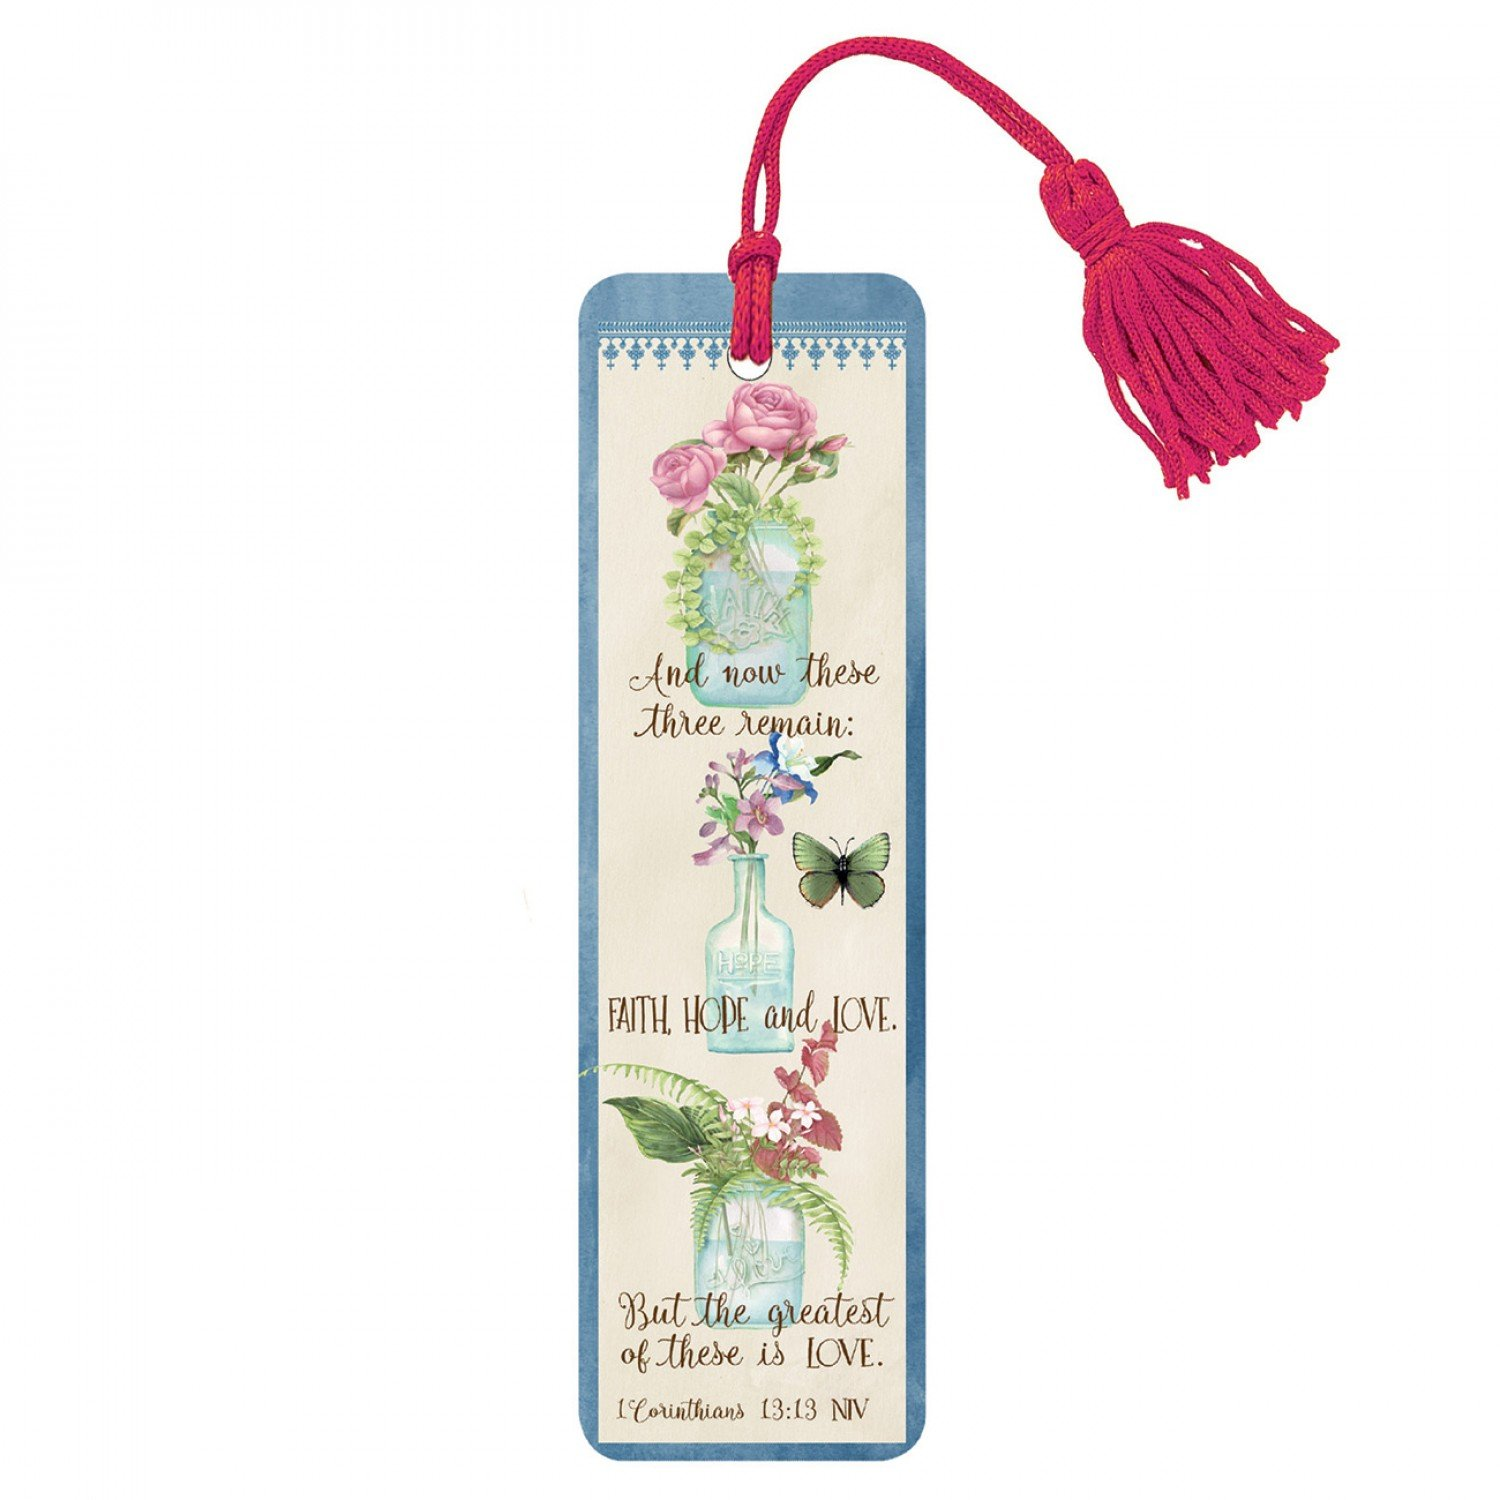 It Takes Two Bookmark With Tassel BK126 Faith Hope & Love $1.99/each